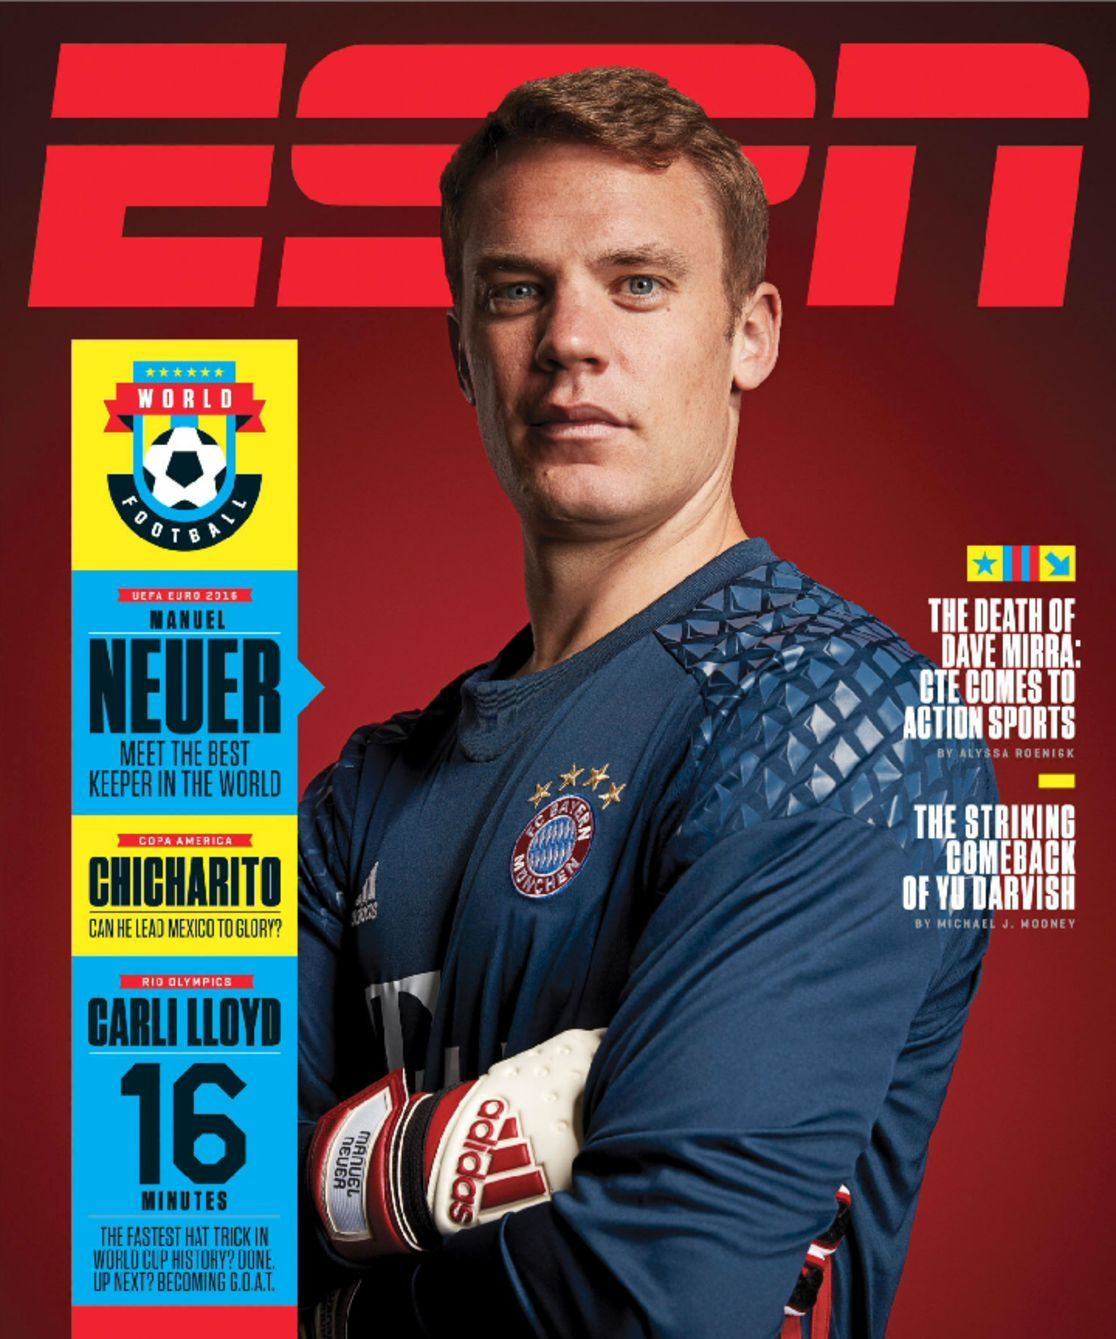 """Only $! w/ Discount Code. ESPN Insider digital access for $ Show Coupon Code. in educationcenter.ml coupons. SAVE. WITH COUPON CODE Only $! No Magazine with Insider subscription is $ for 2 years or 5 for 1 with coupon """"INSIDER"""" SPN Show Coupon Code. Shared by @NQS $"""